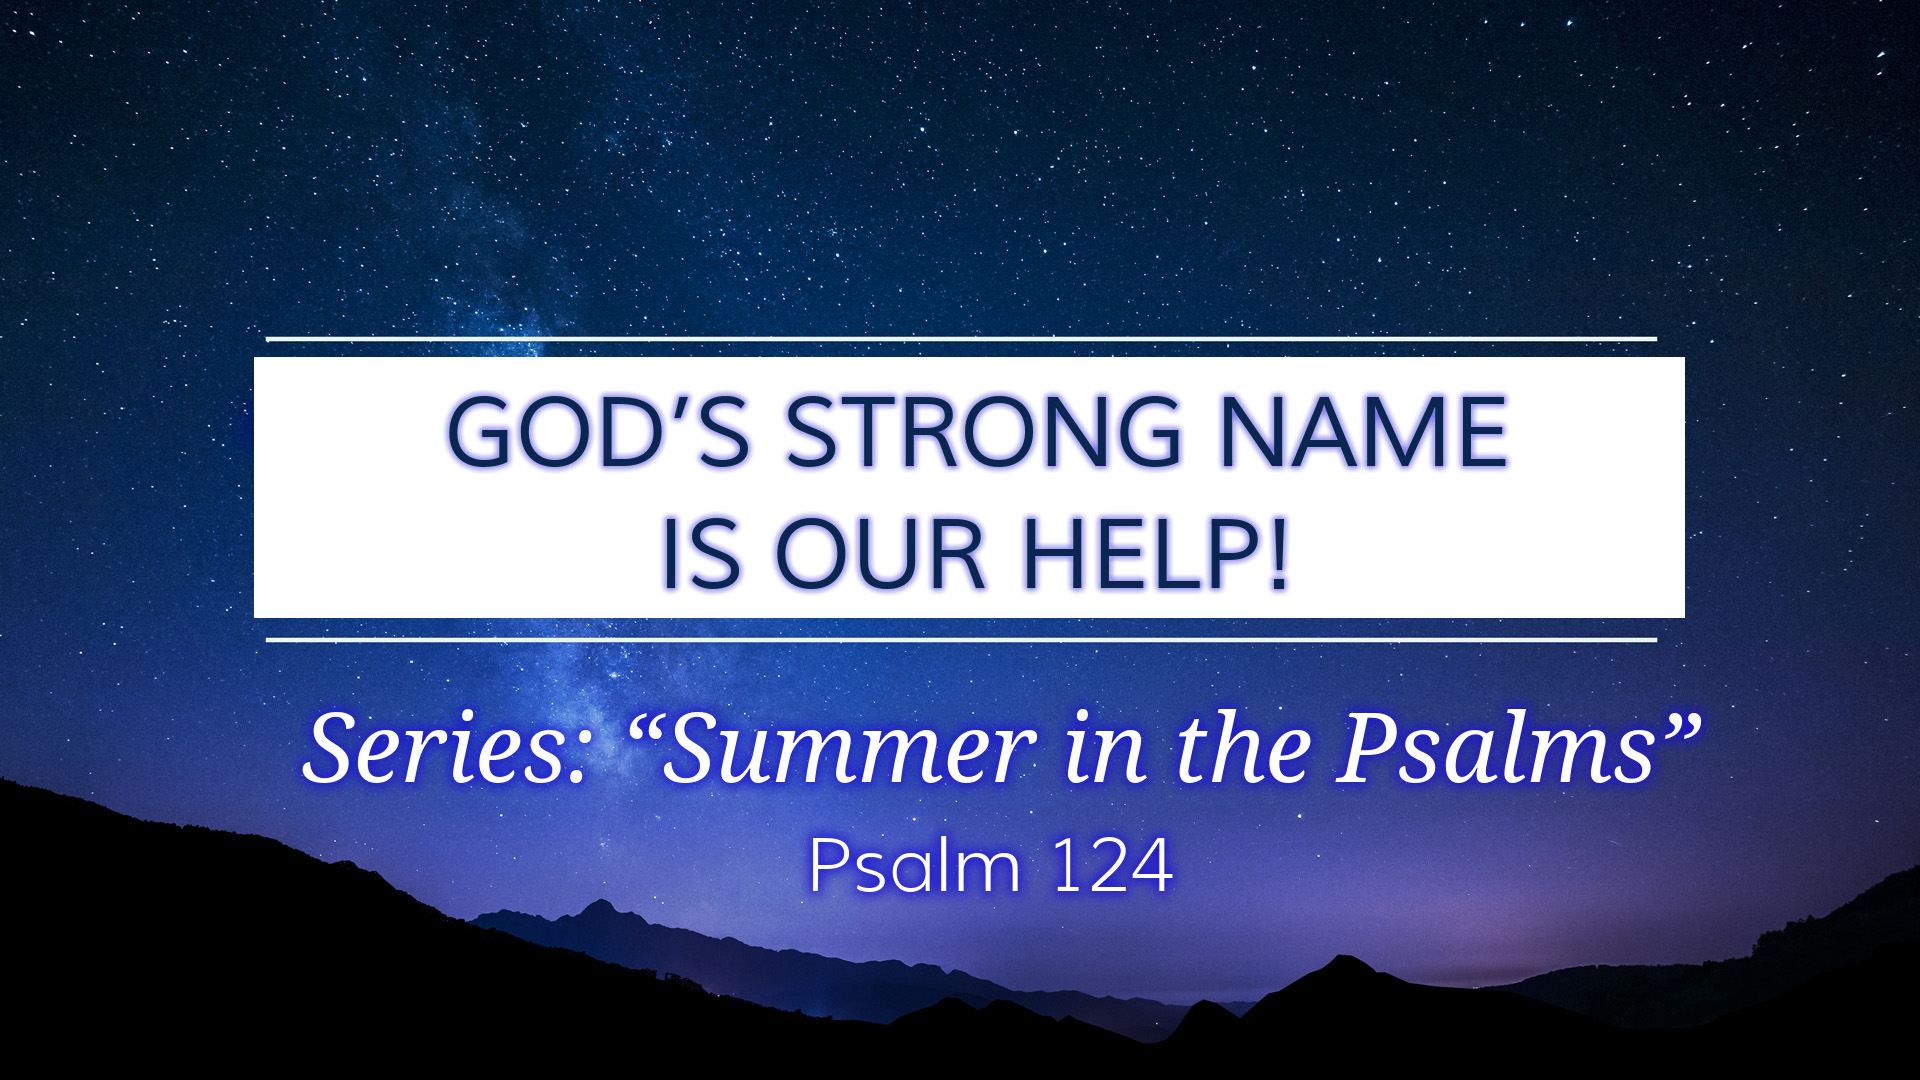 Image for the sermon God's Strong Name is Our Help!